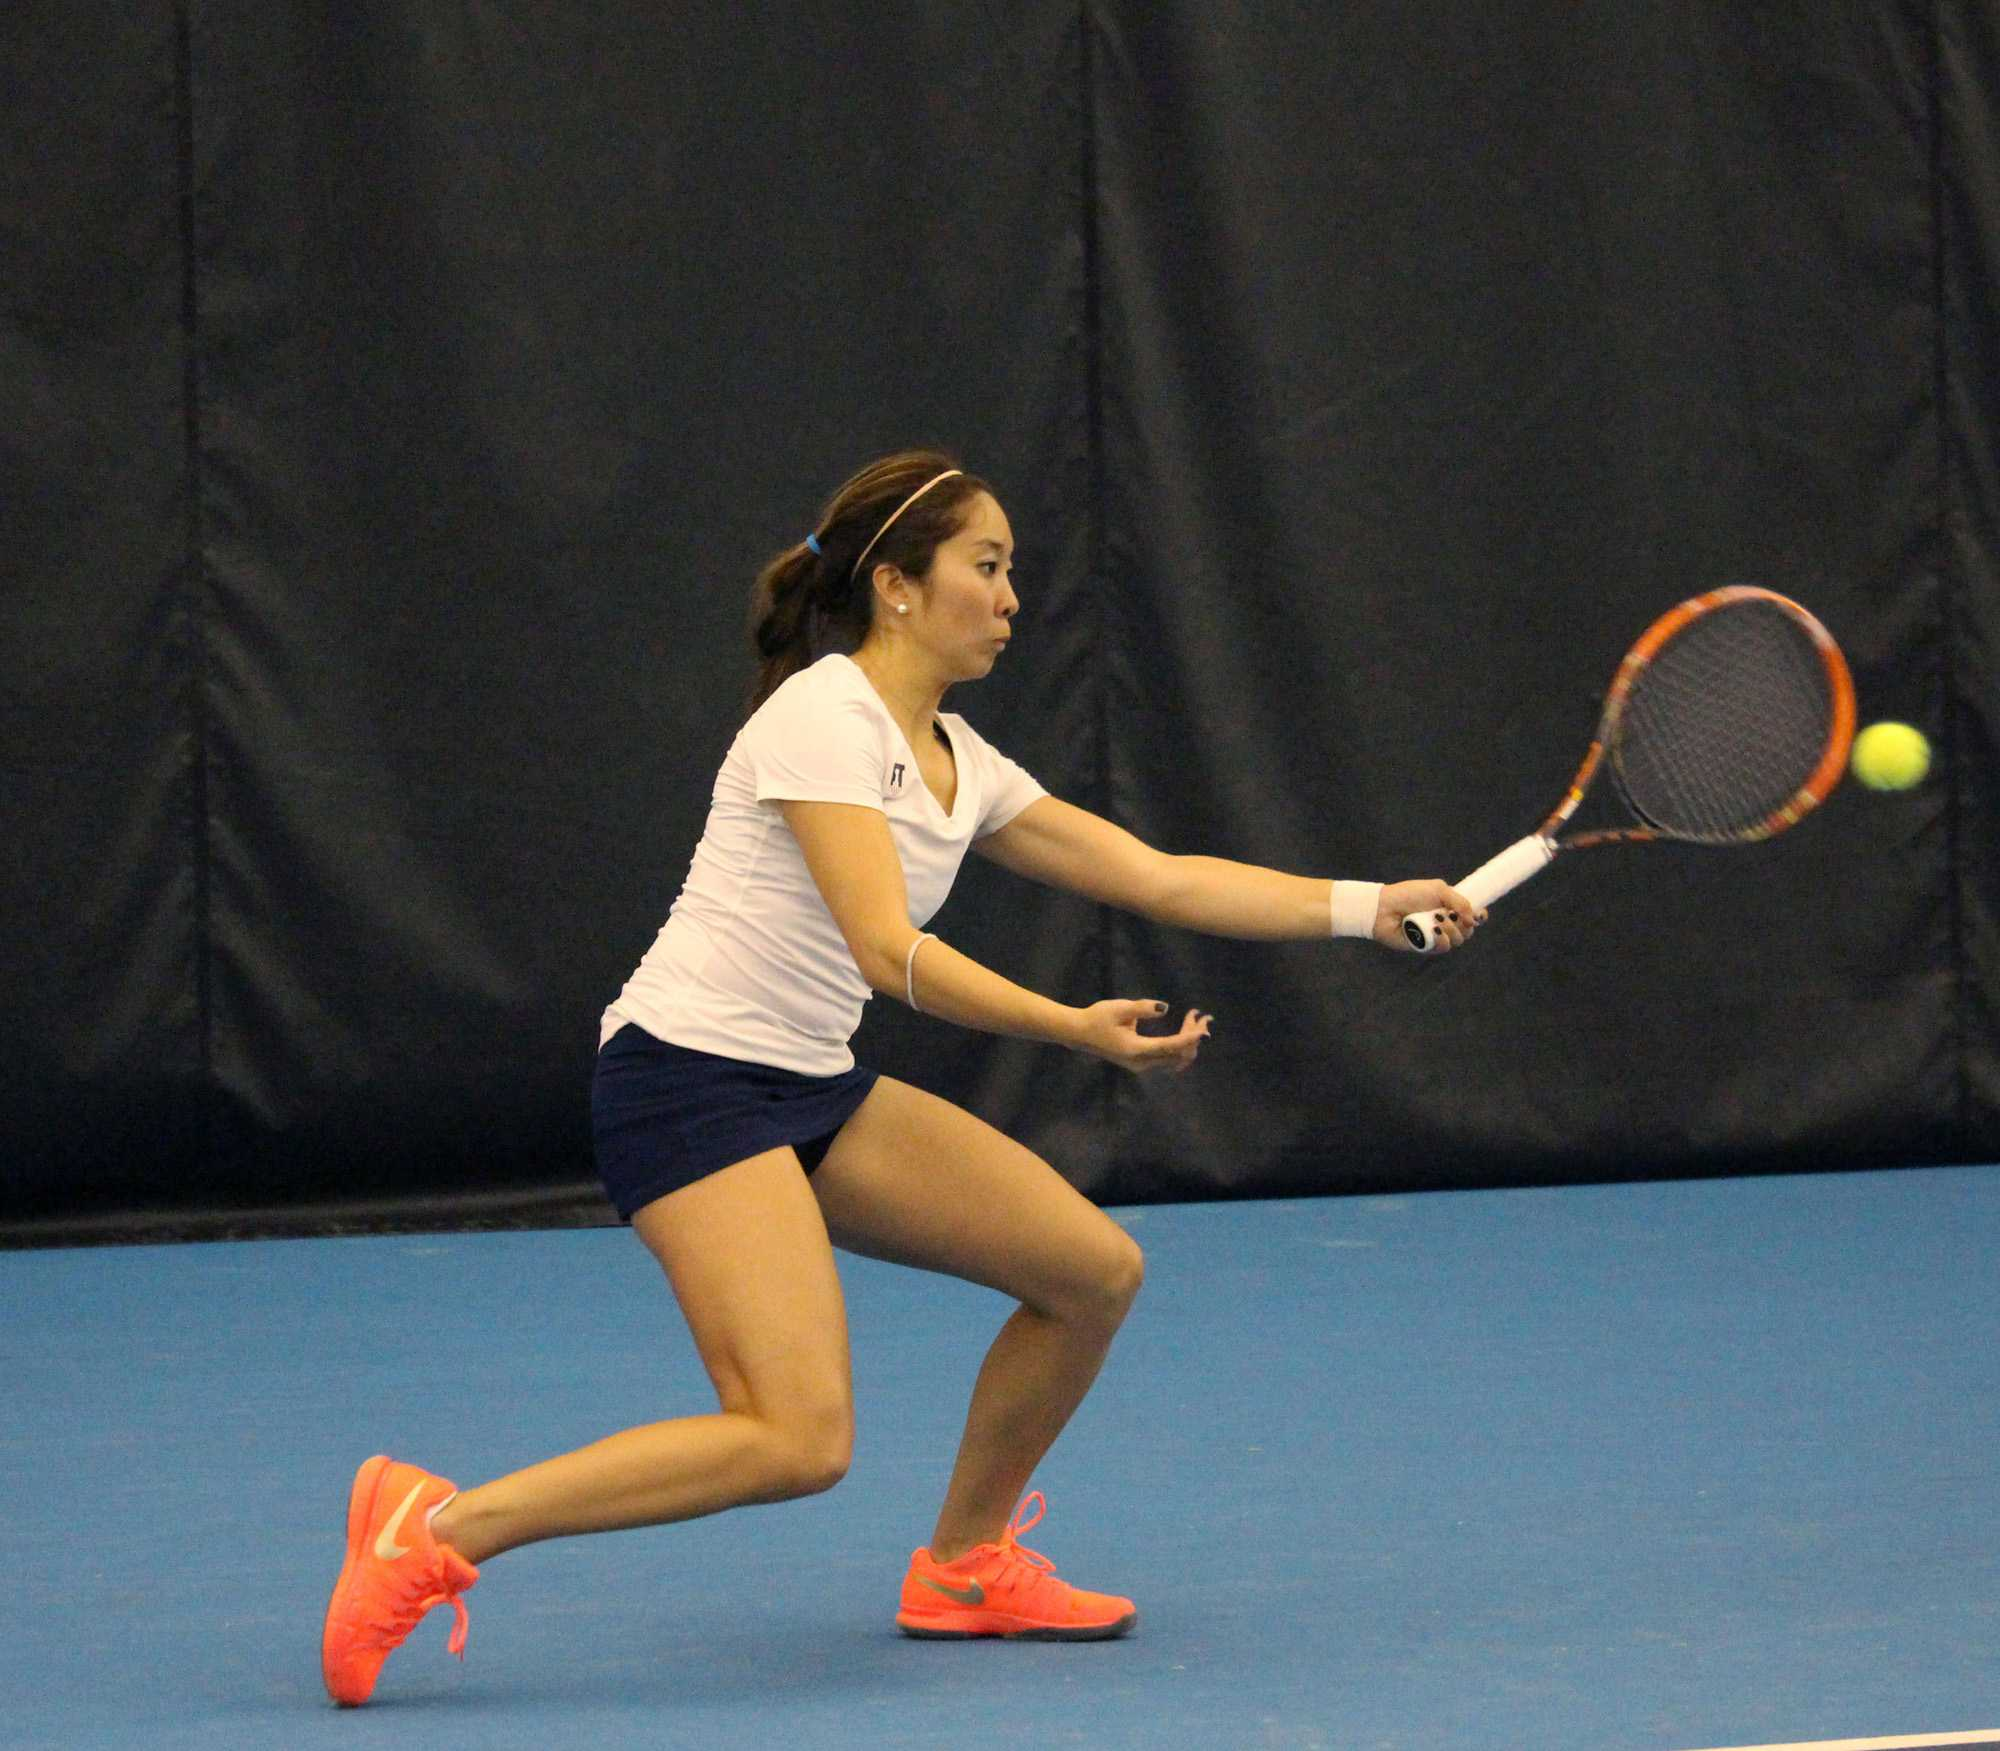 Louise Kwong rallys the ball at the Atkins Tennis Center on February 13, 2016. Illini beat South Florida 5-2